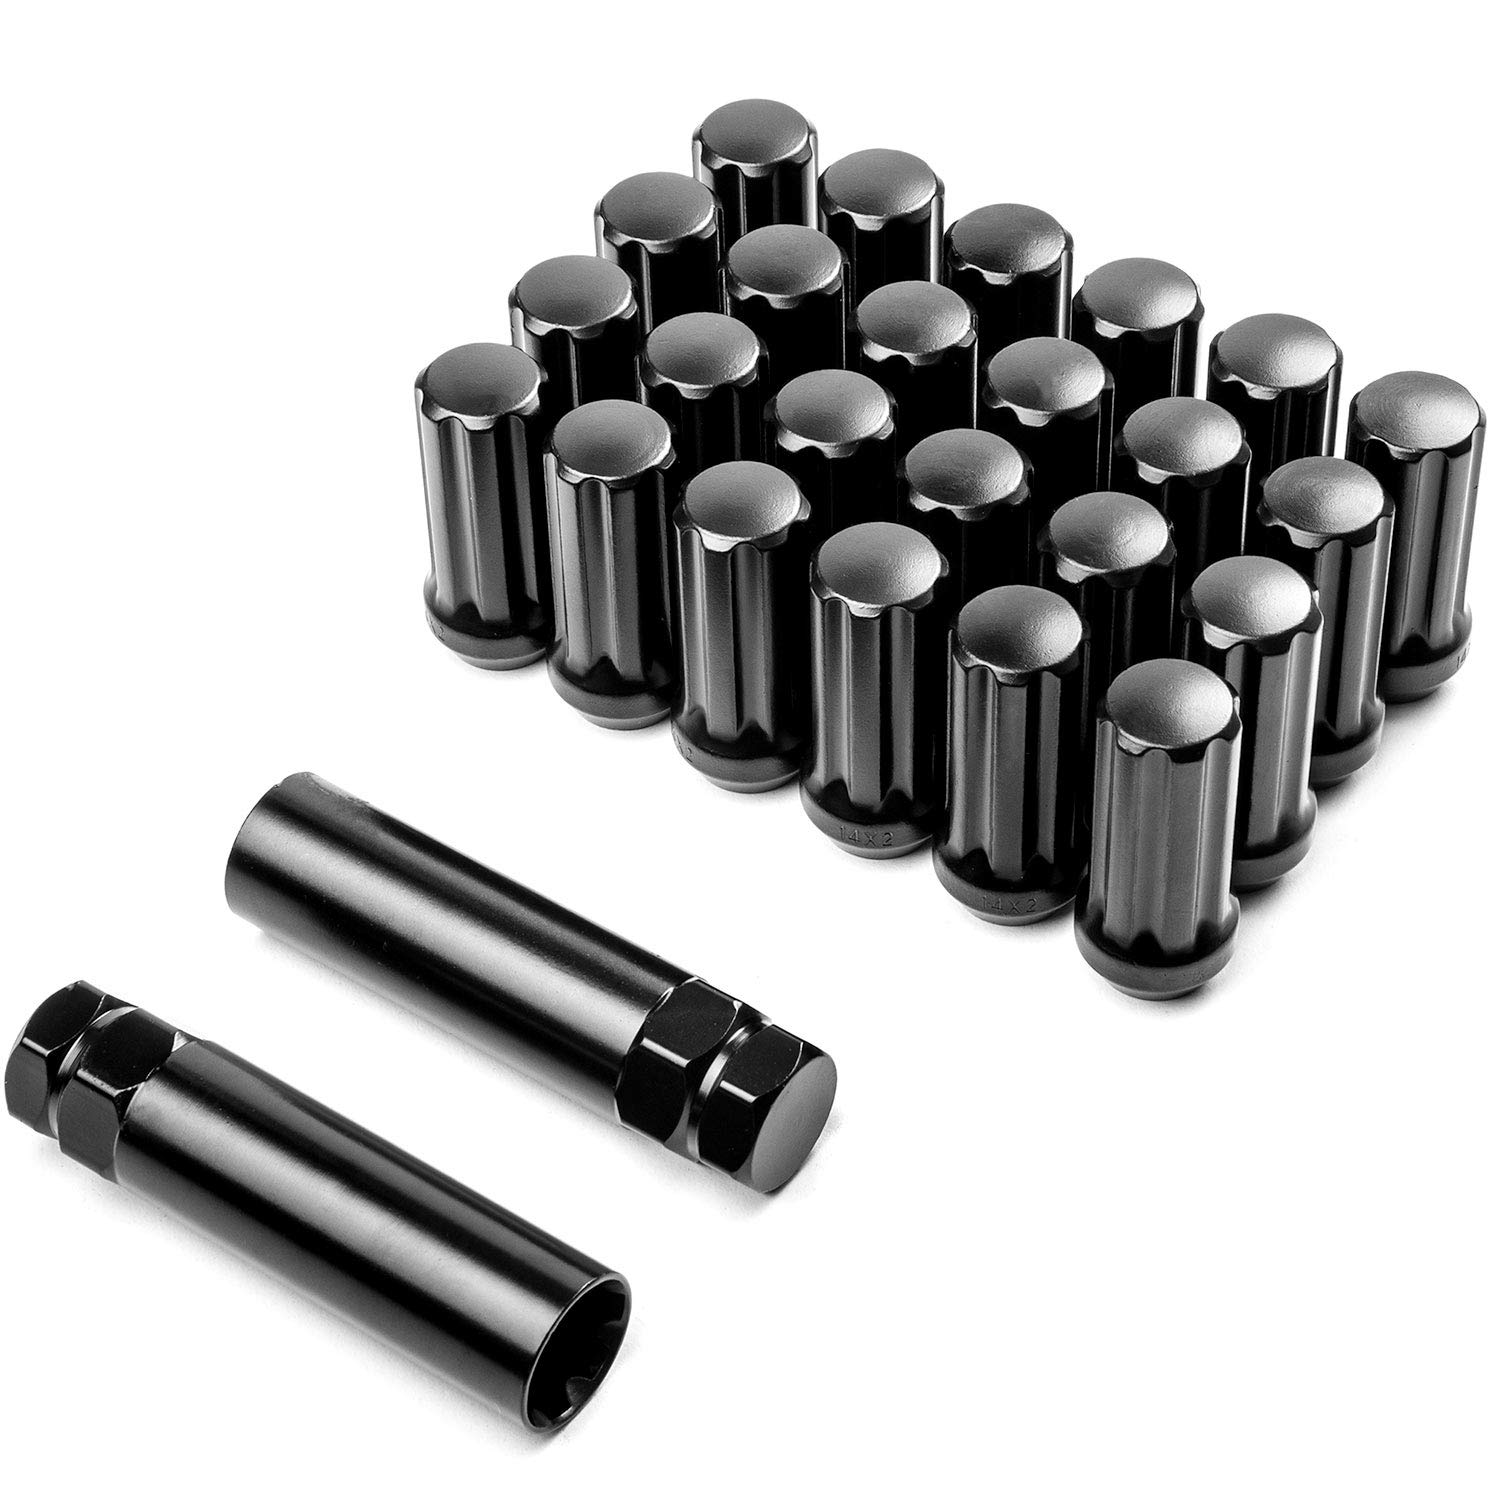 Krator 24pc Black 14x2 Wheel Lug Nuts + 2x Keys Anti-Theft Locking Security Lug Nut 7 Spline Drive Closed End Cone Seat - Overall Length: 2.0' KapscoMoto